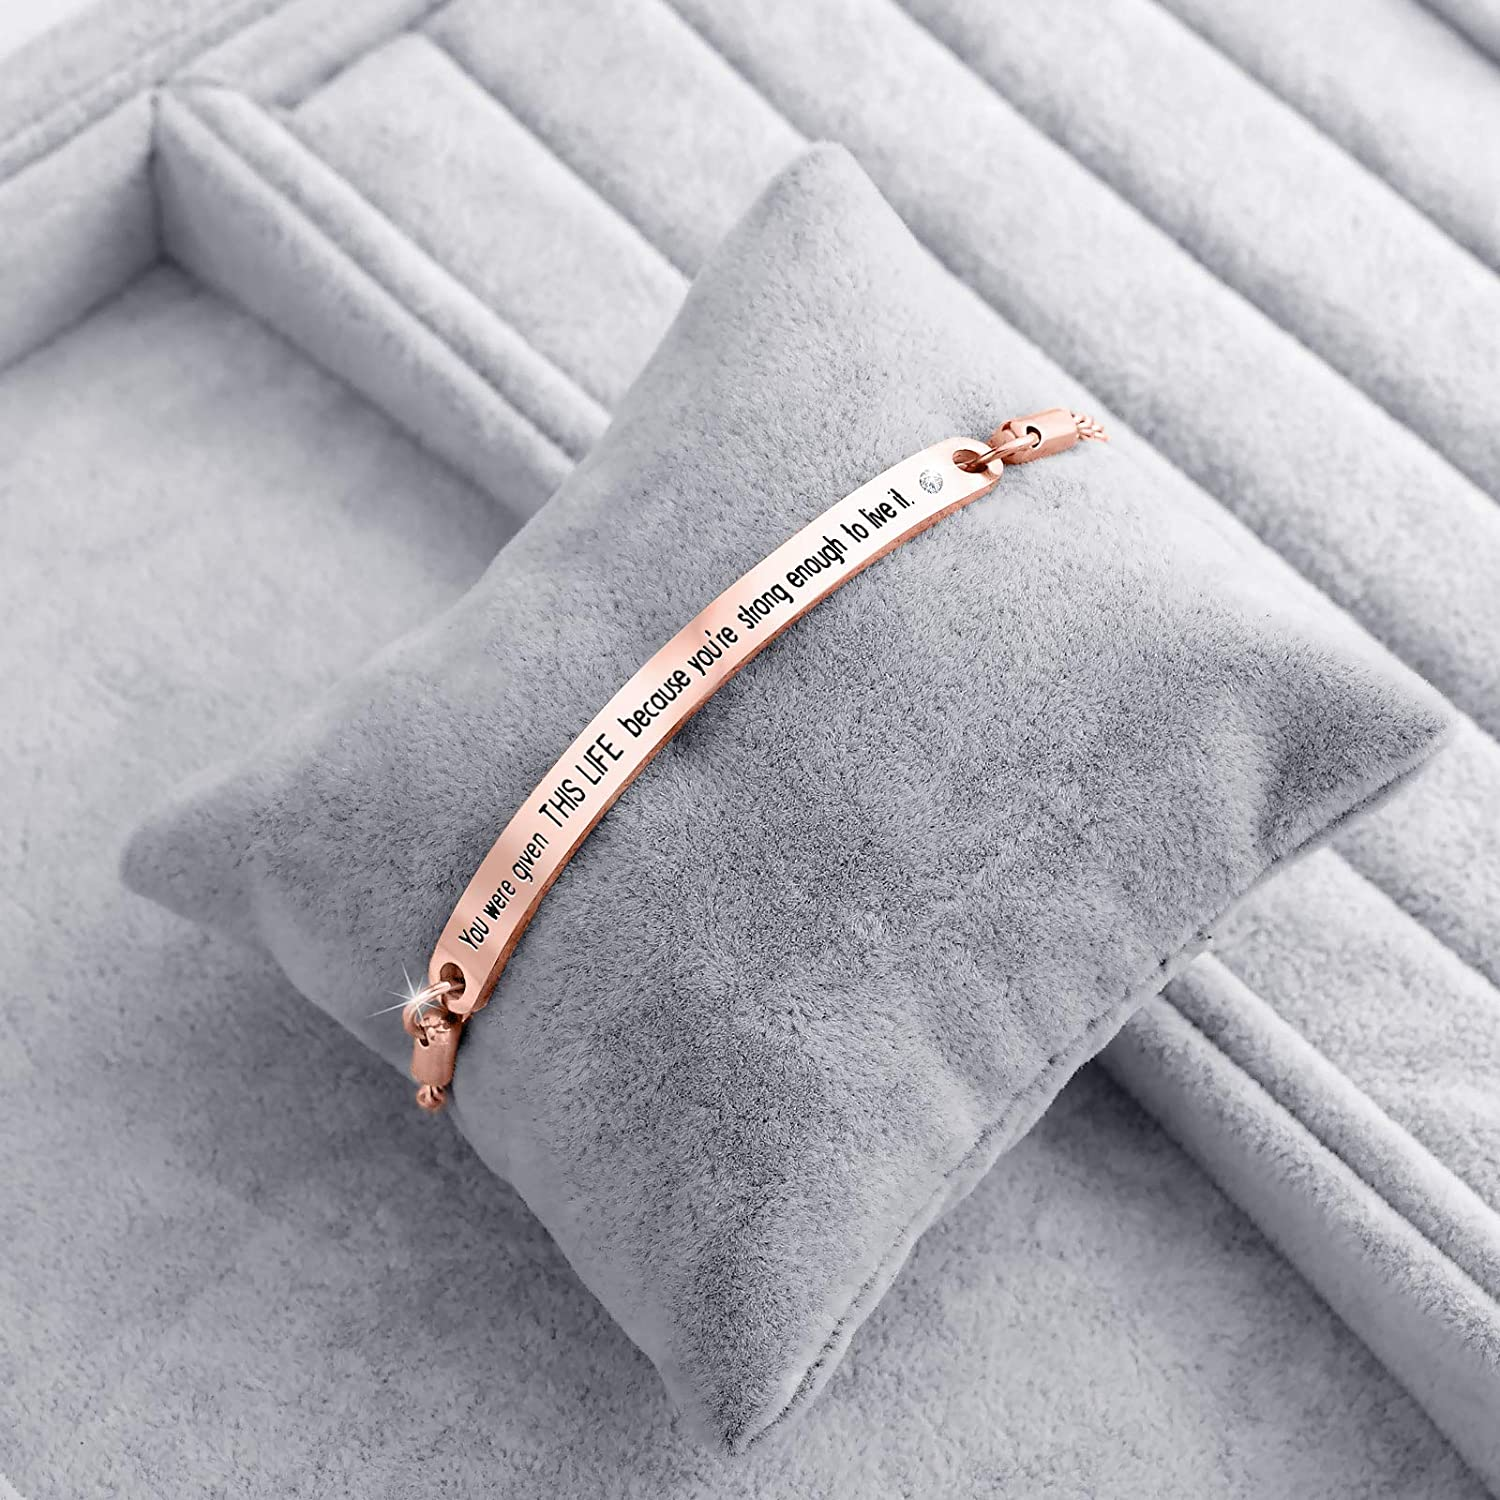 ivyAnan Jewellery Inspirational Bracelets Gifts Engraved Personalized Fashion Bangles for Women Girl Sister Mother Friends